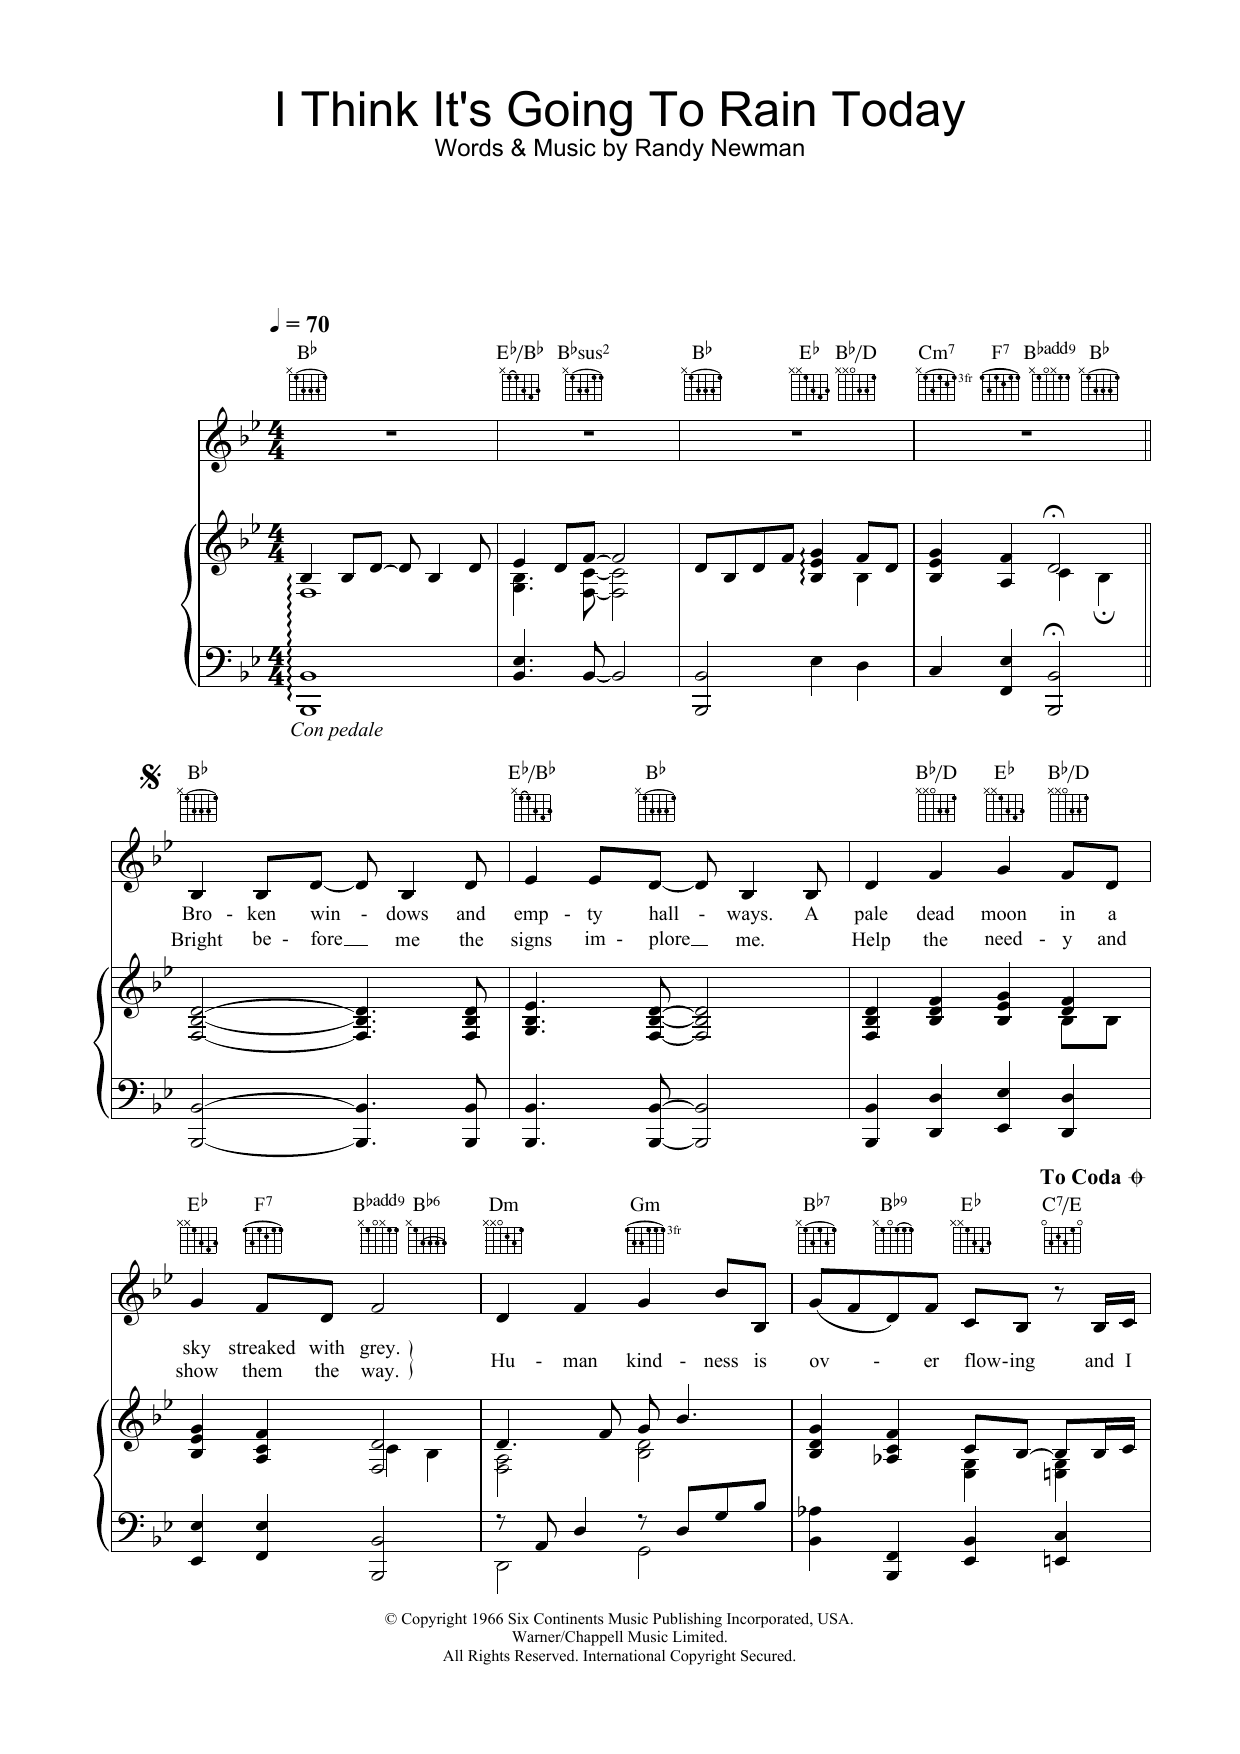 Katie Melua I Think It's Going To Rain Today sheet music preview music notes and score for Piano, Vocal & Guitar including 3 page(s)